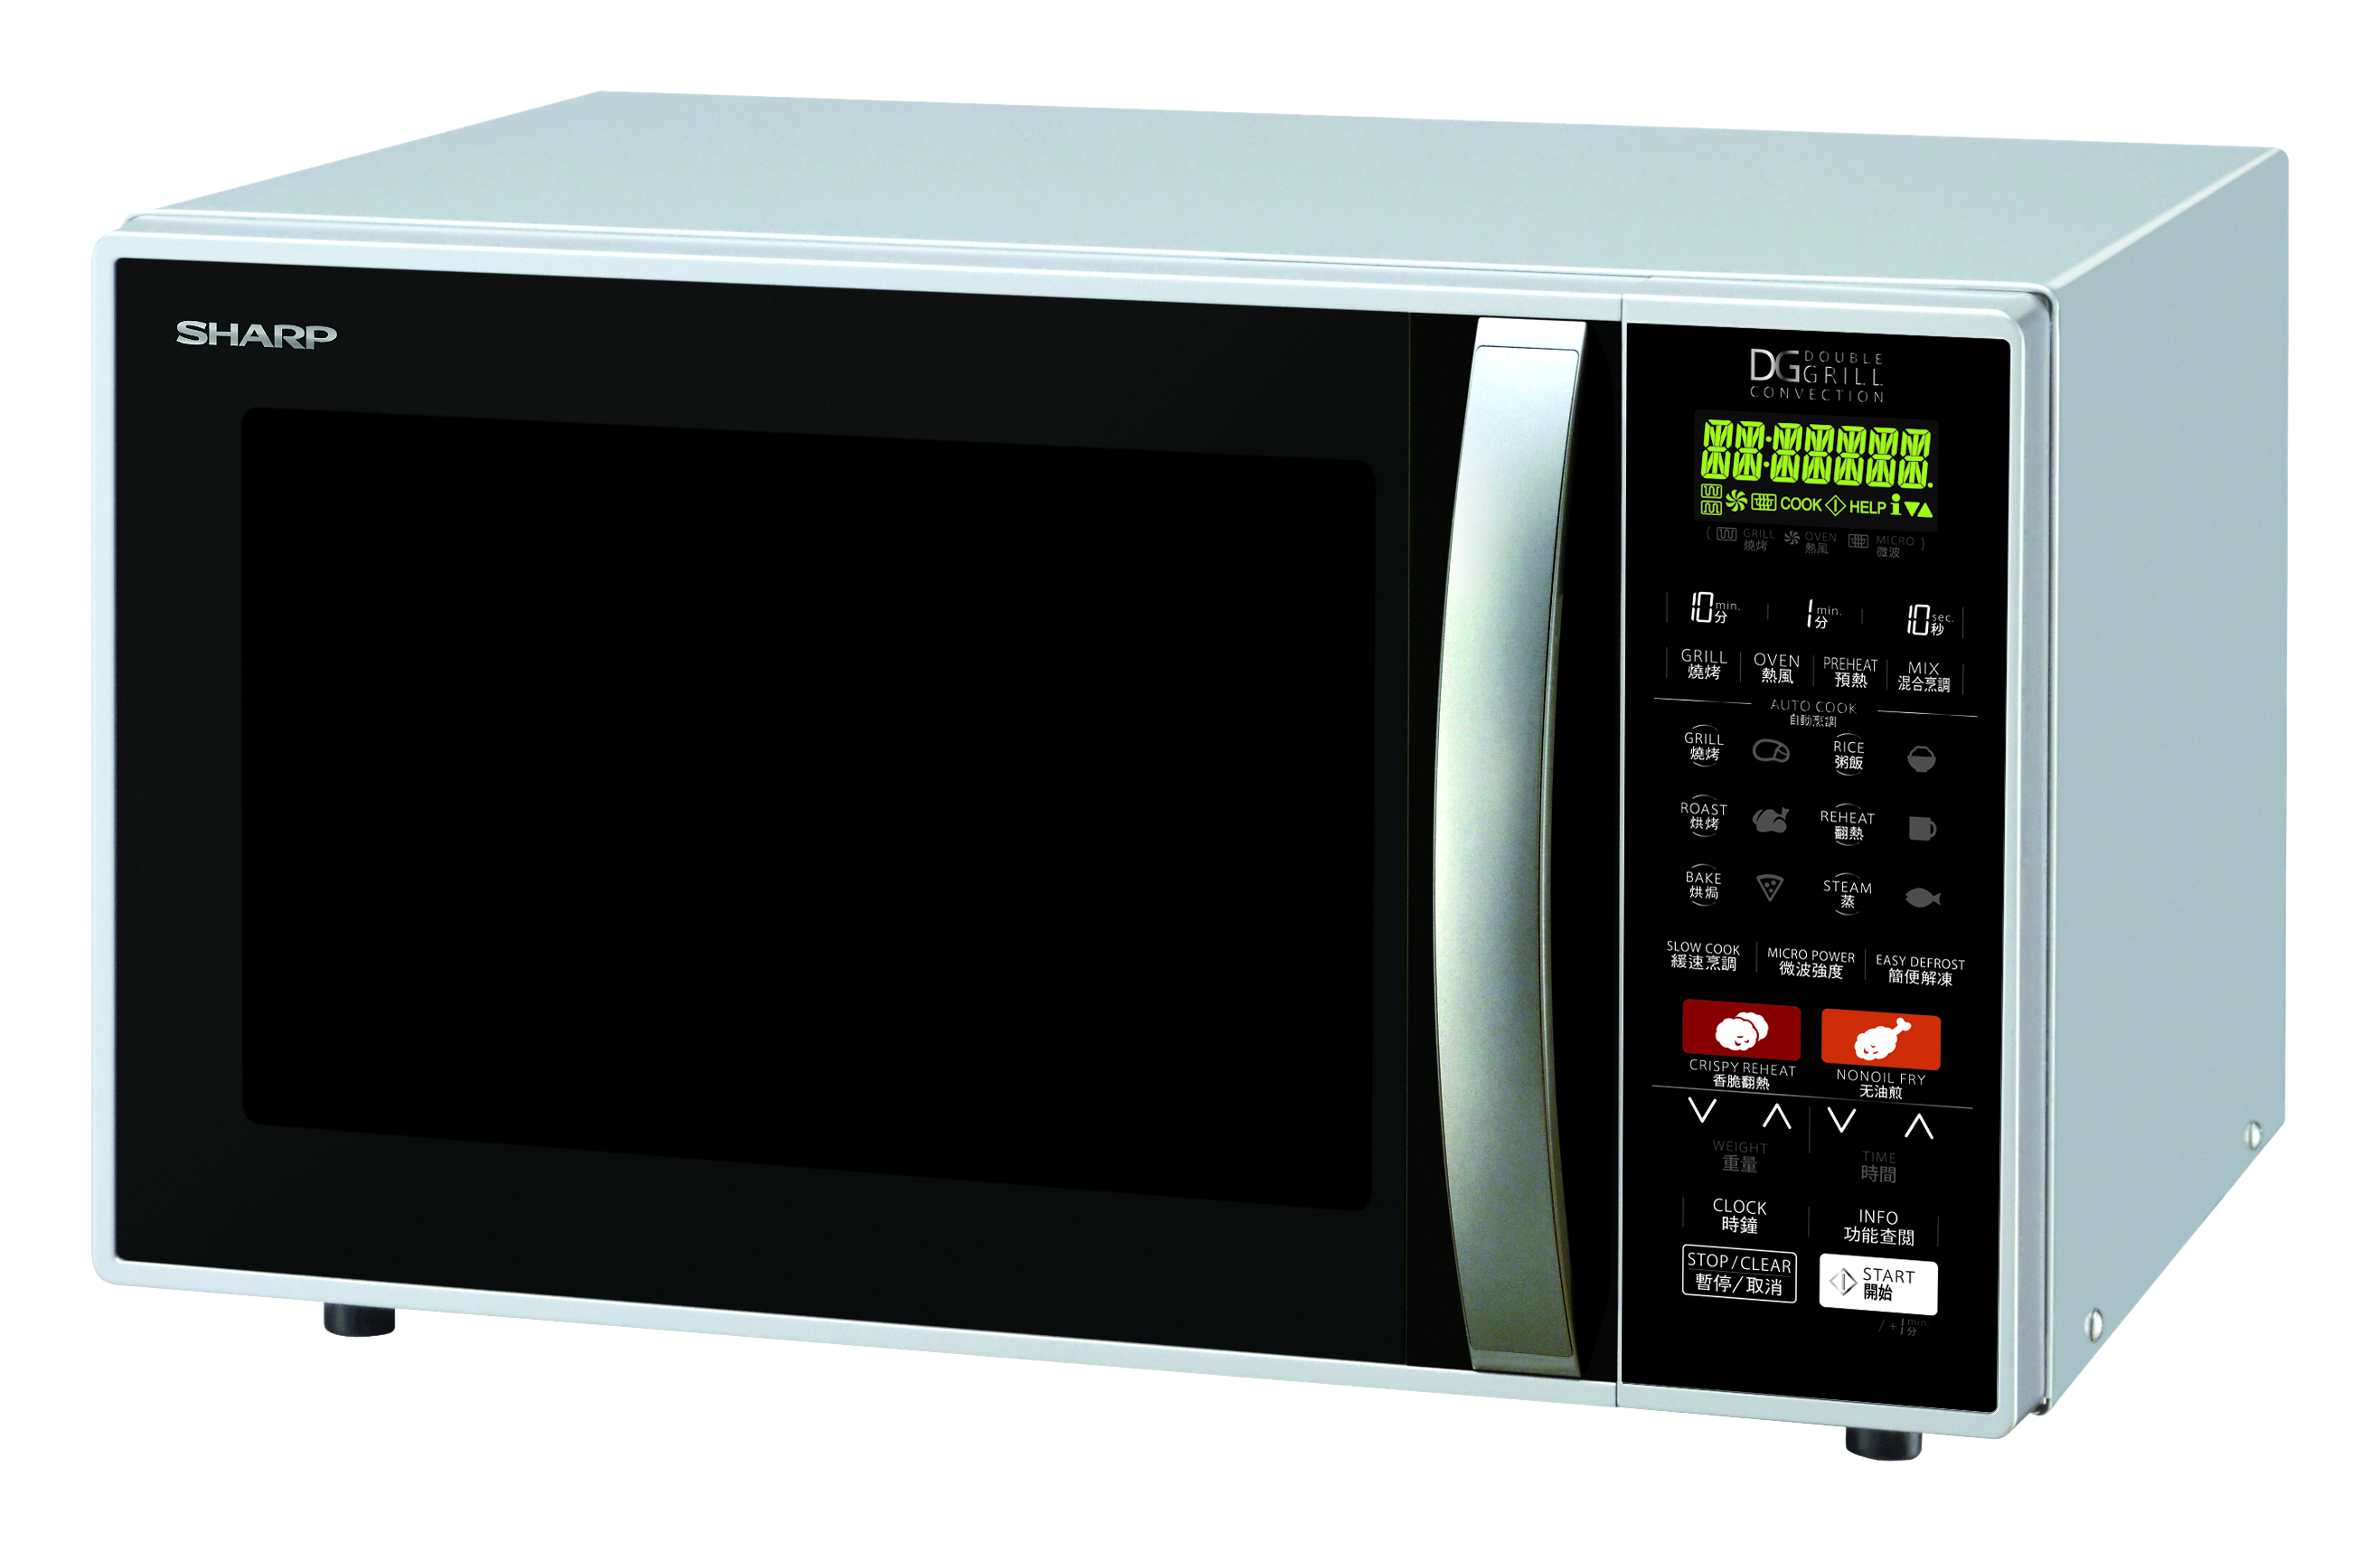 26l microwave oven with convection r